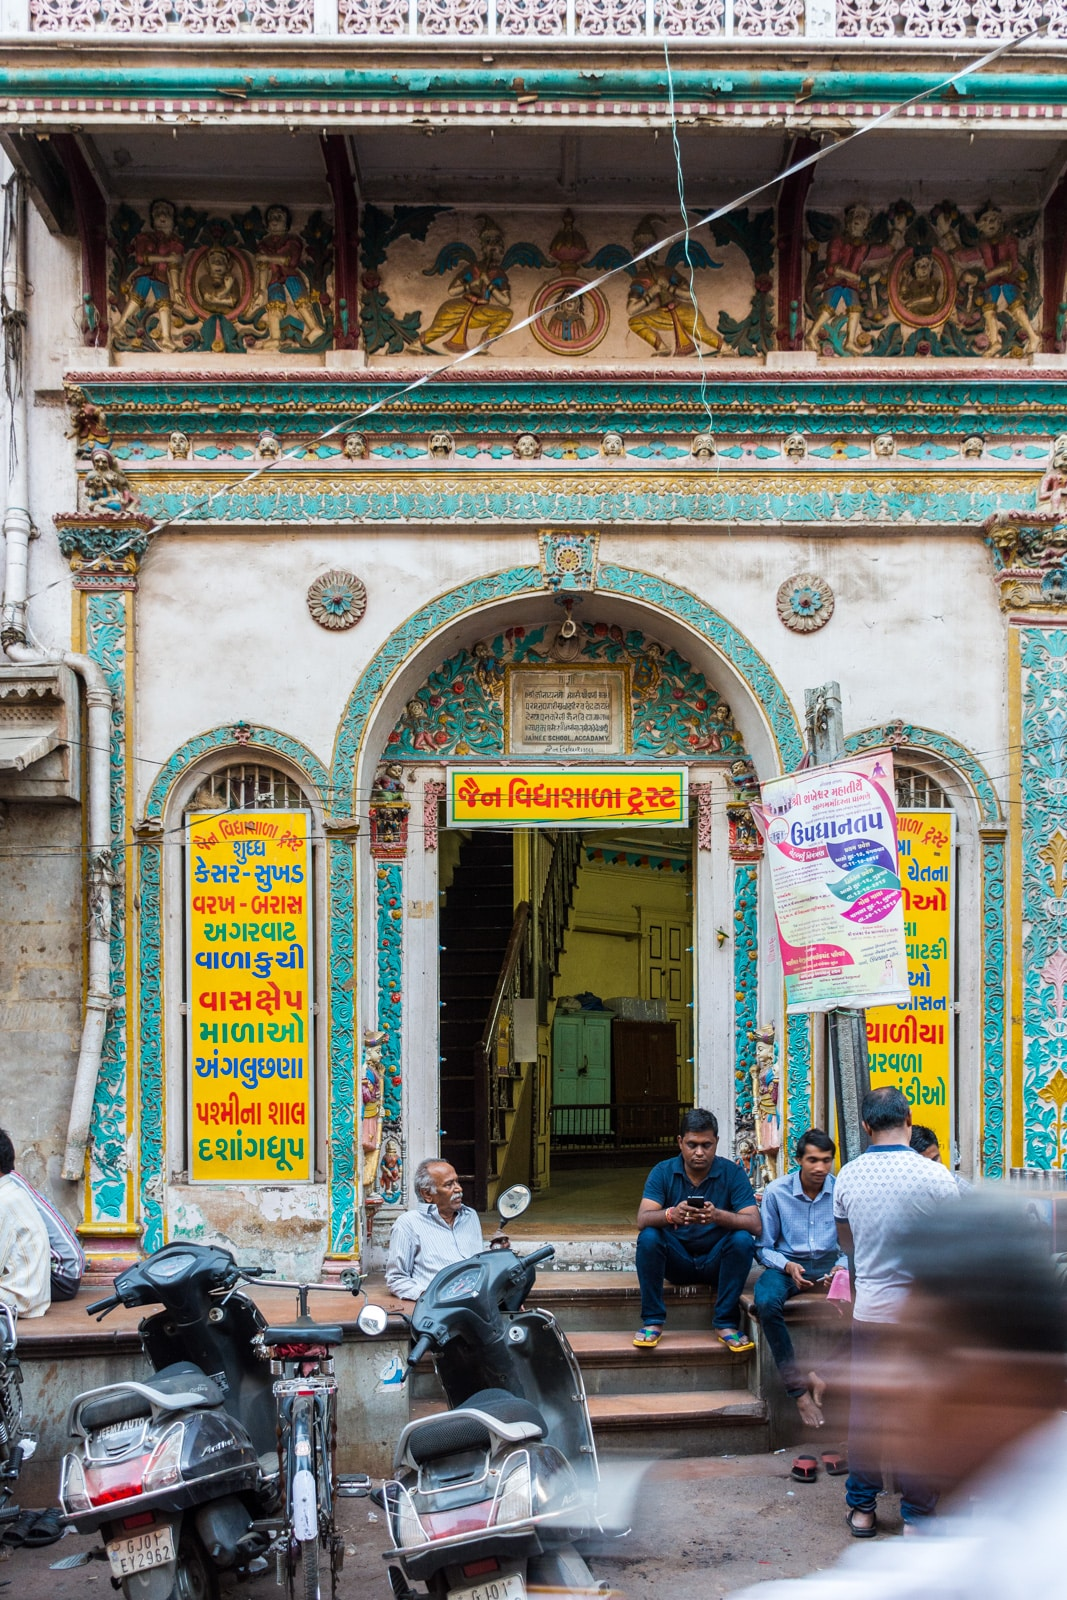 Men sitting outside a colorful traditional building in Ahmedabad, Gujarat state, India.